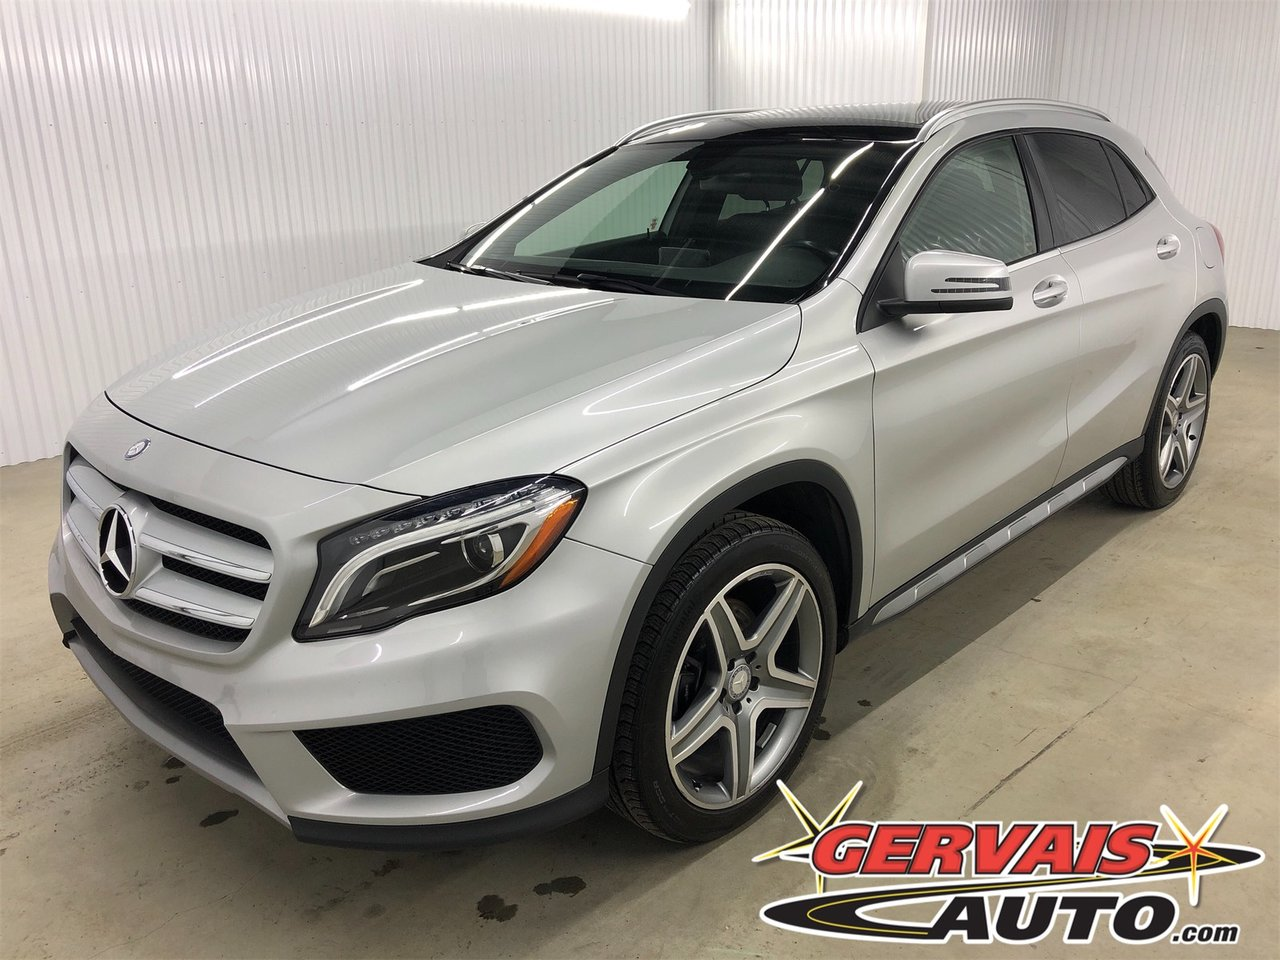 Mercedes-Benz GLA-Class 2015 GLA 250 4Matic GPS Cuir Toit Ouvrant MAGS